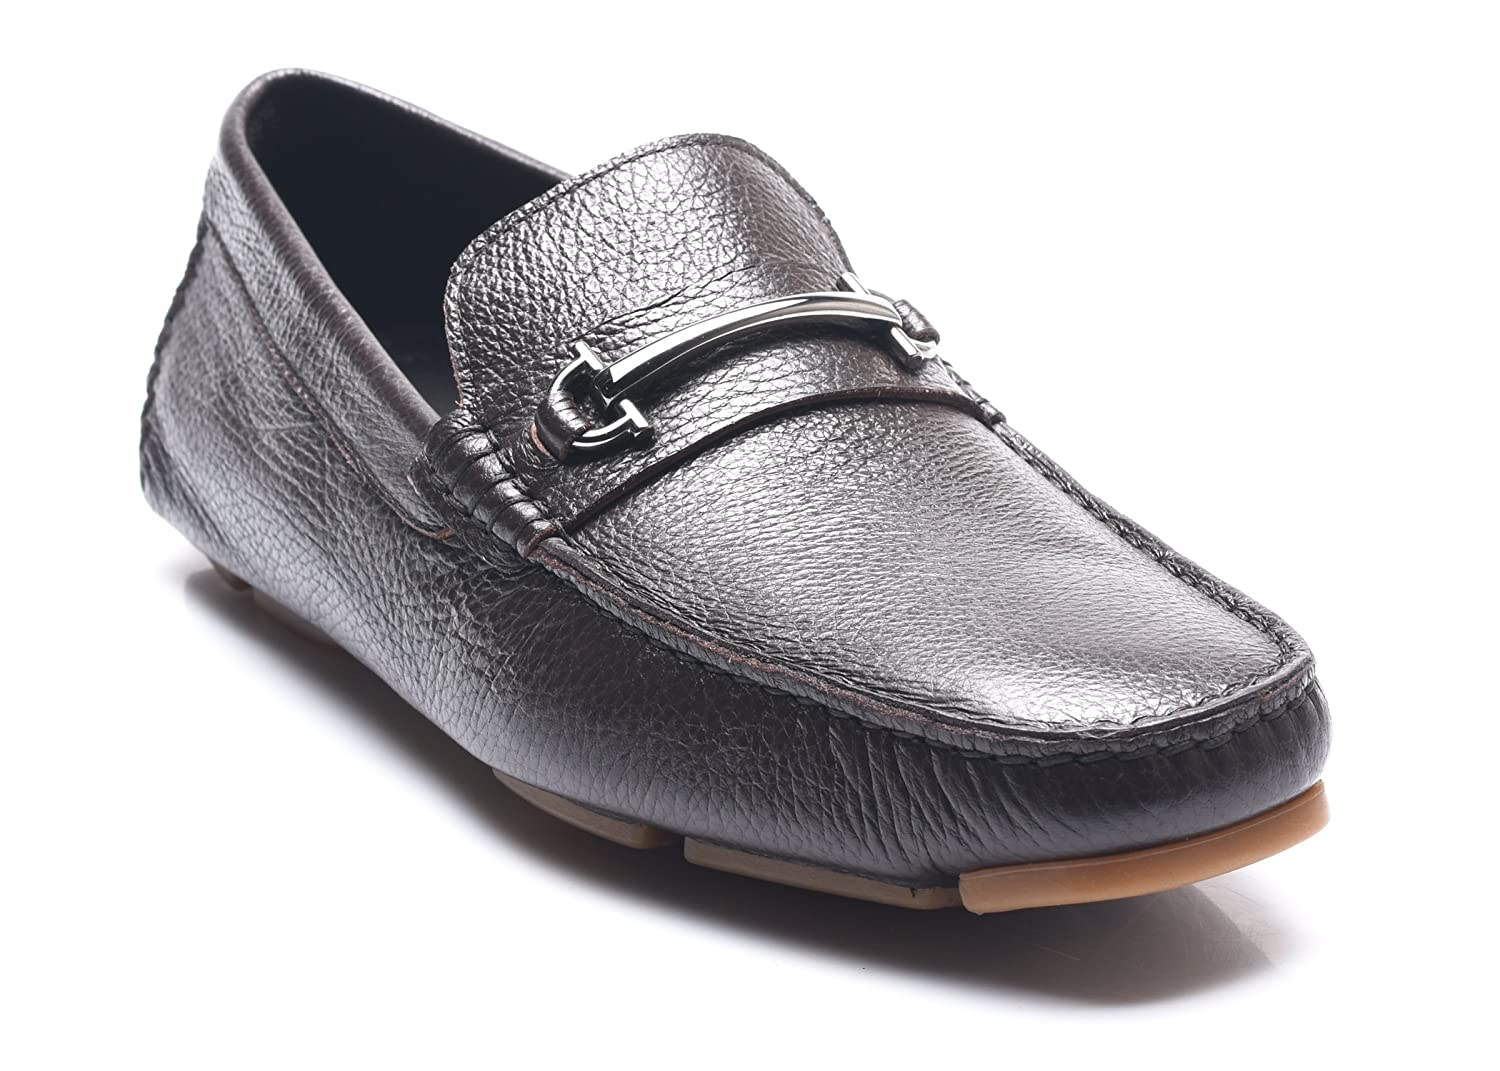 24abdd1ba247 70%OFF Bruno Magli Men s Leather Driving Shoes Loafers Brown. Men · Loafers    Slip-Ons